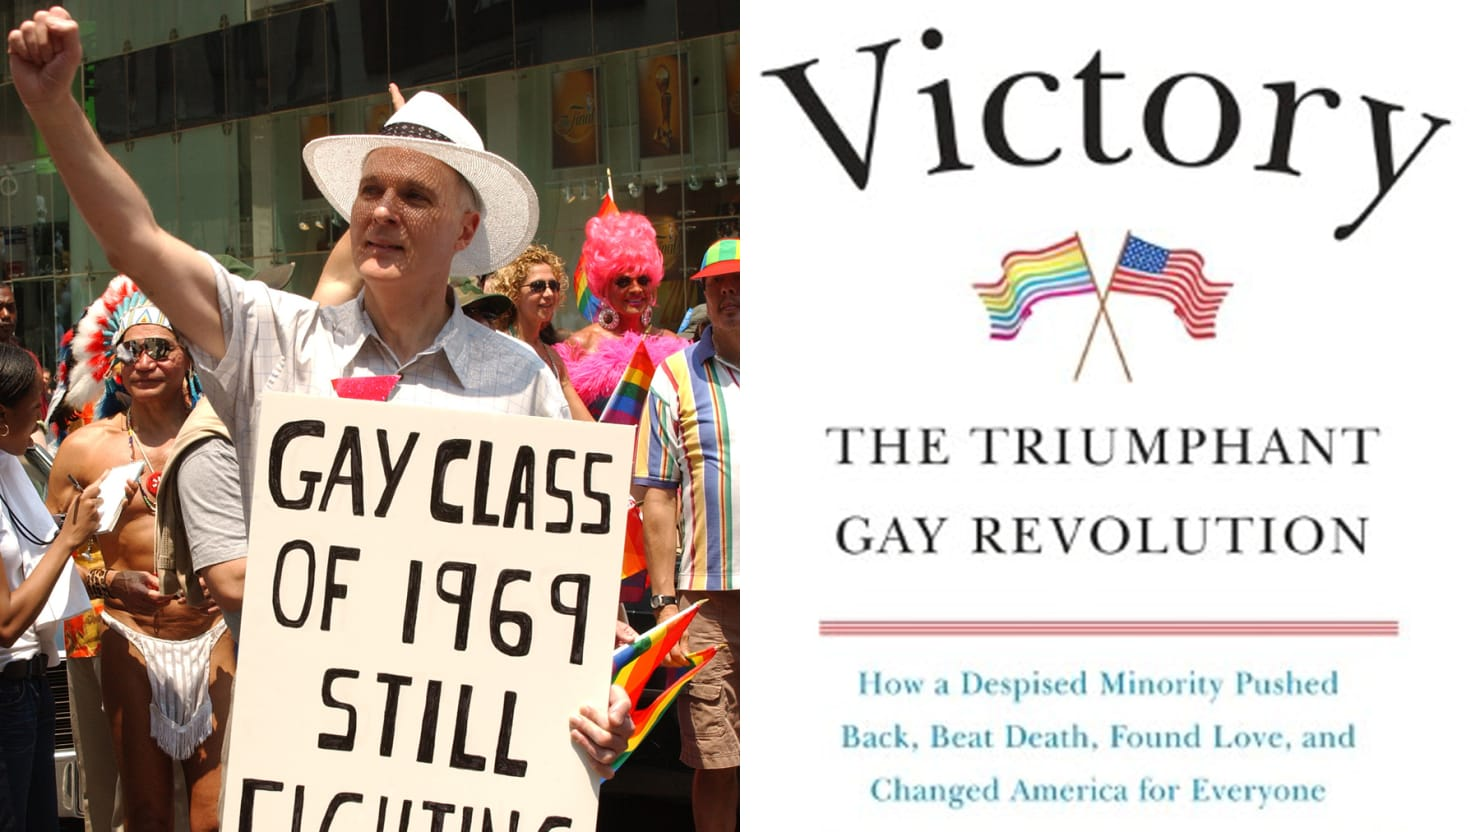 A monumental victory for the gay rights movement